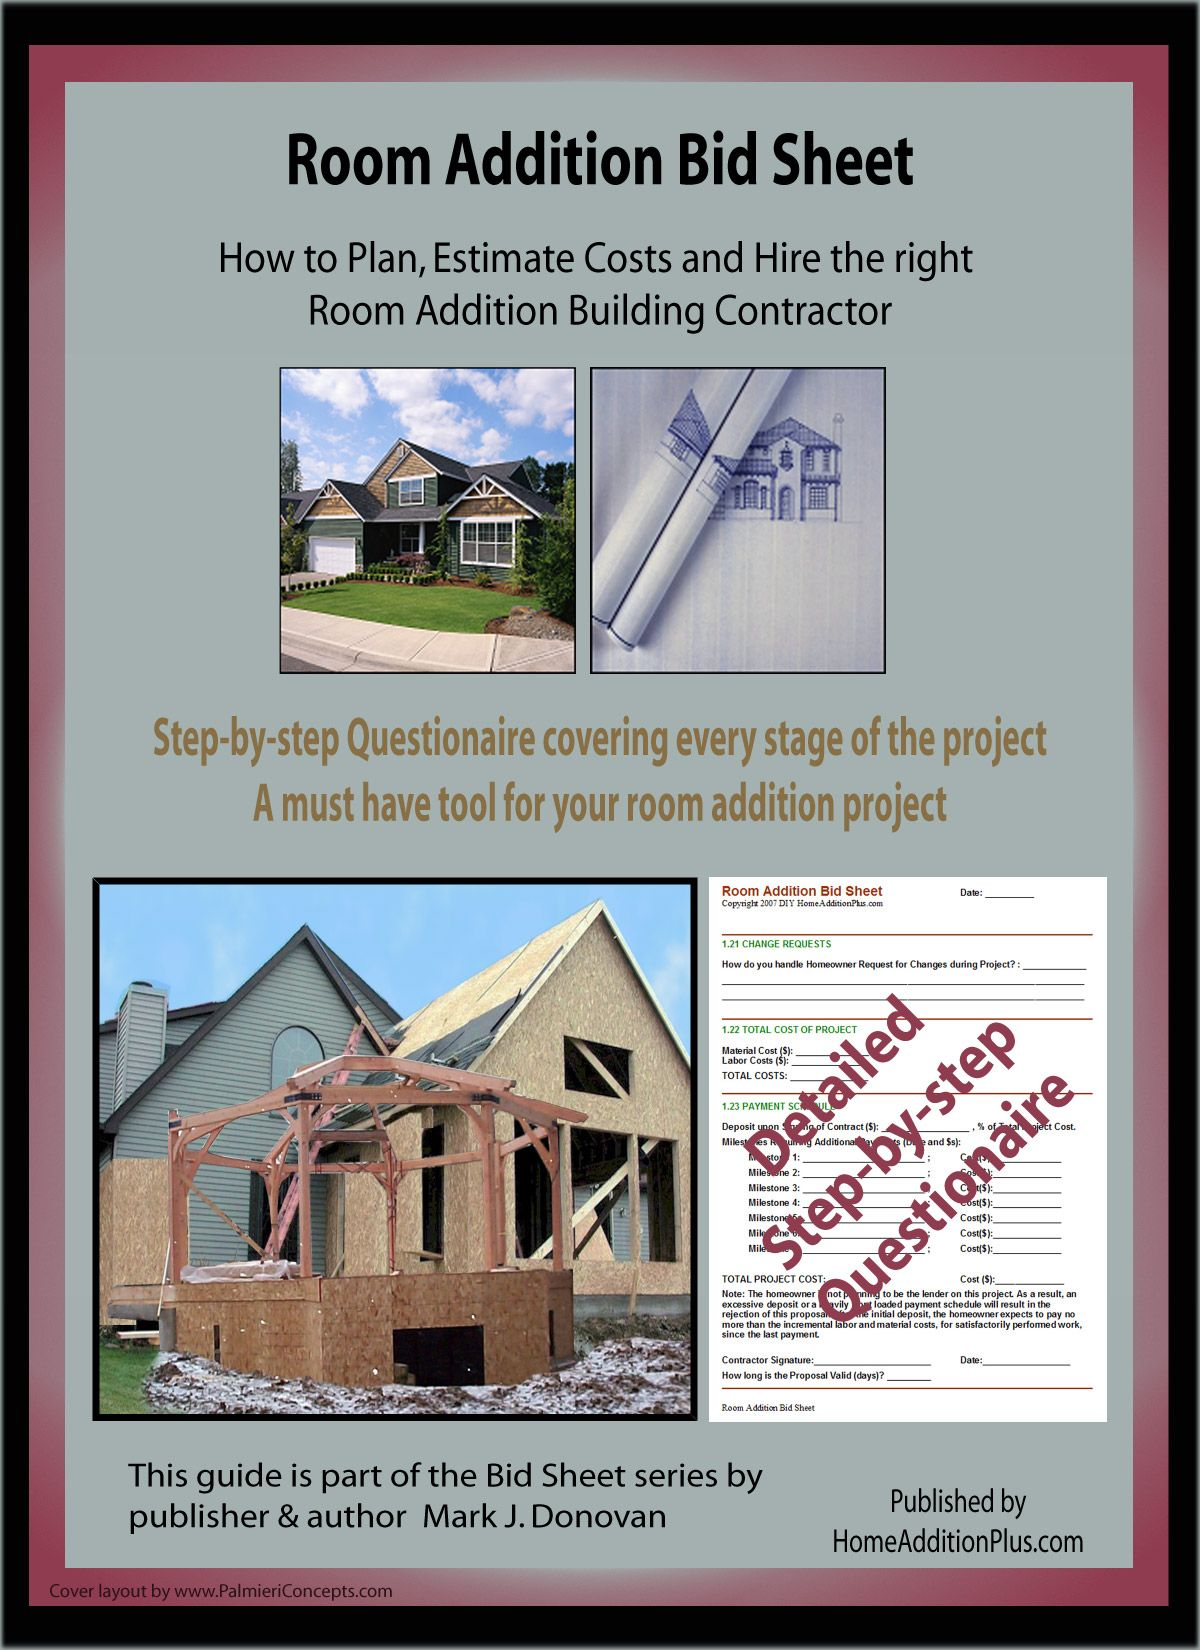 Here Is A Room Addition Bid Sheet For Helping Homeowners Hire The Right General Contractor And Subcontractors It Also Helps Homeowner Plan Estimate